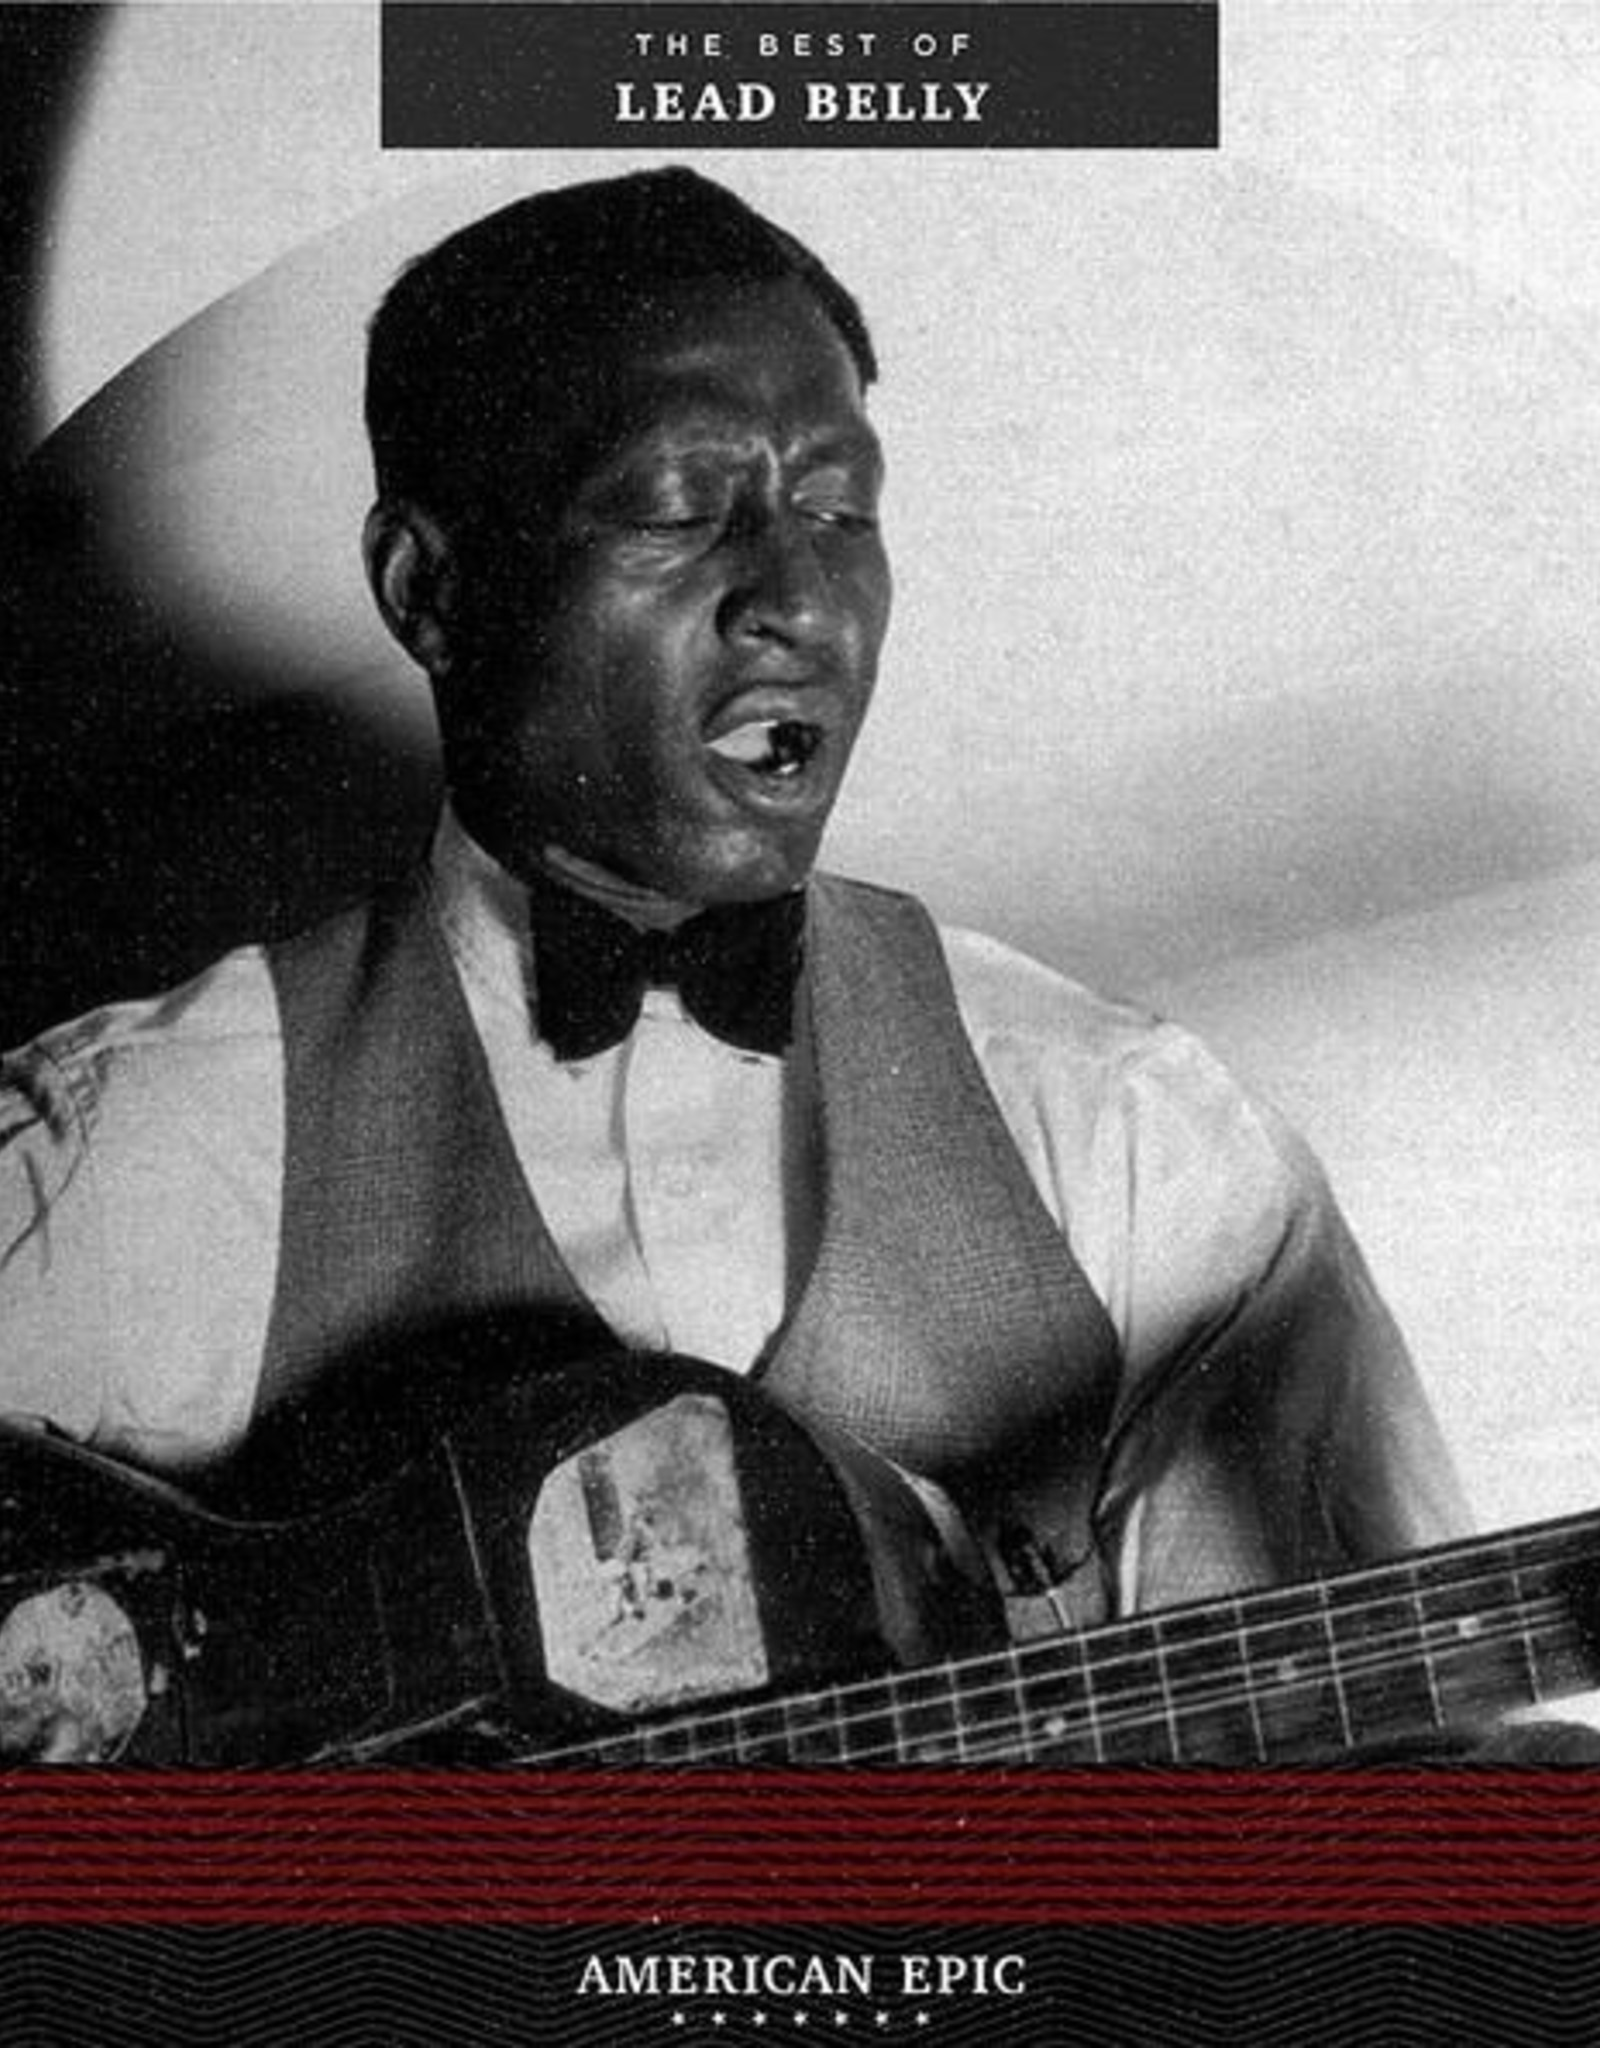 American Epic - The Best Of Lead Belly